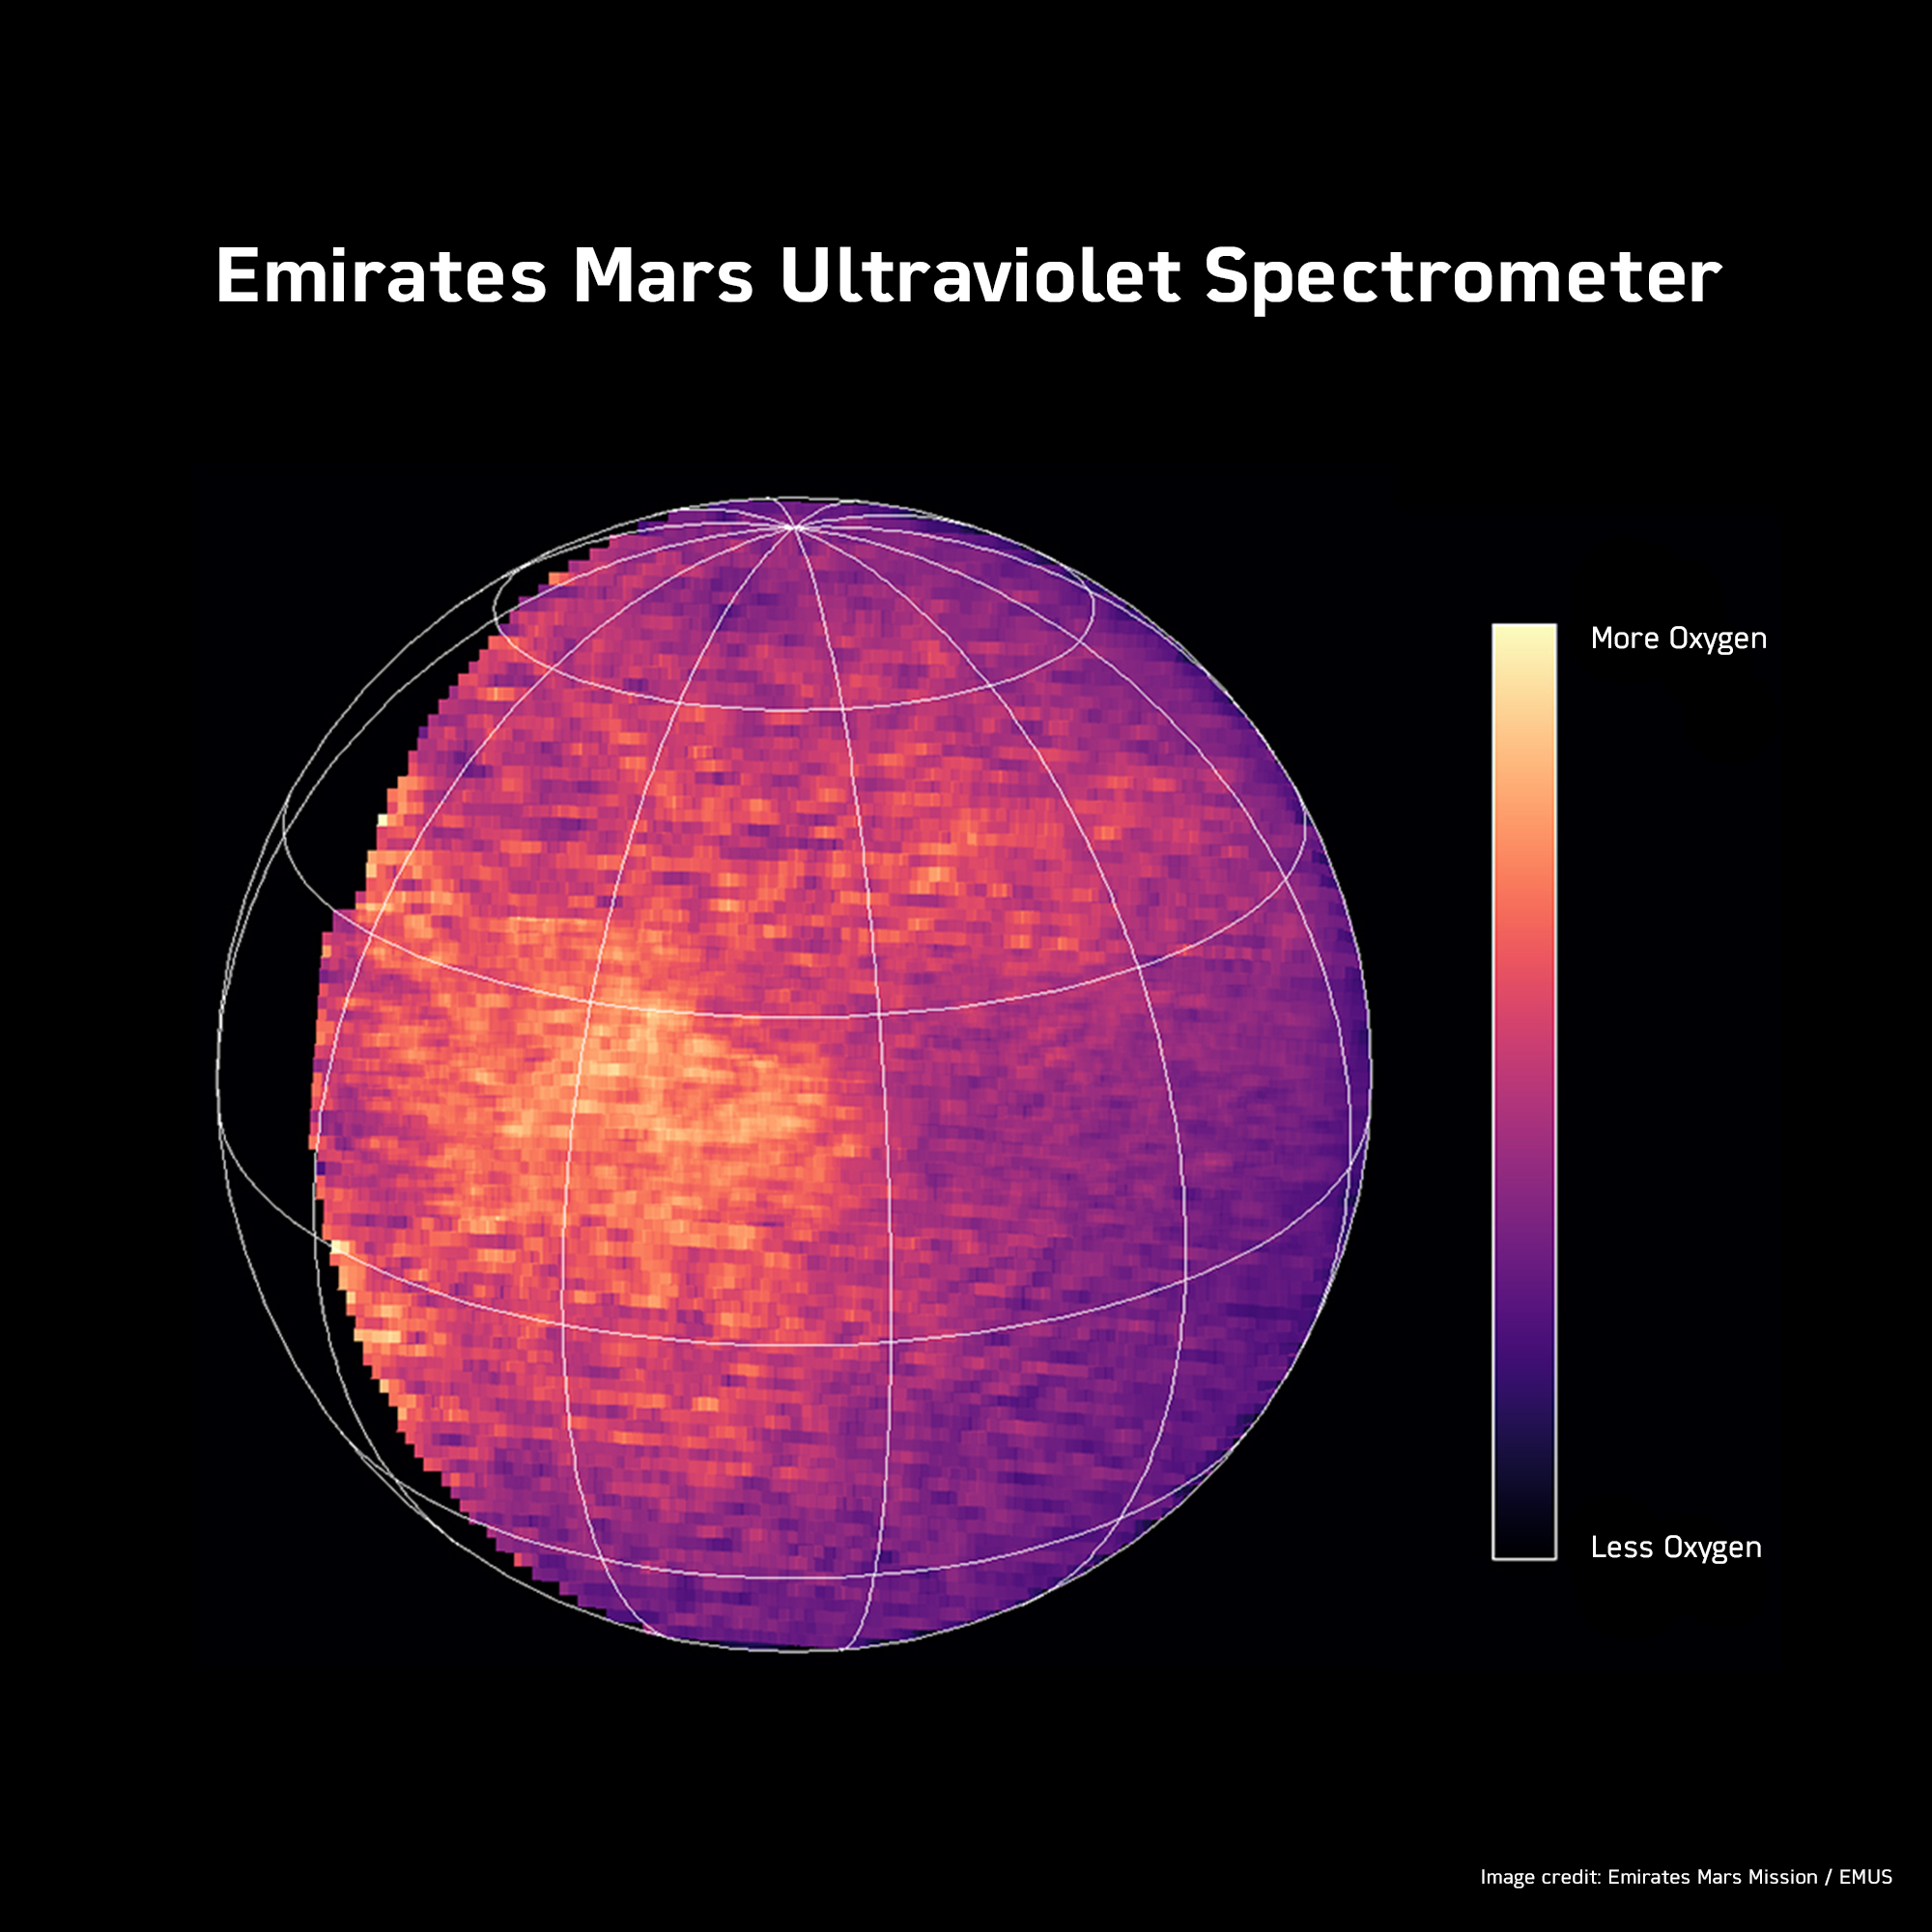 The Emirates Ultraviolet Spectrometer mapped the distribution of atomic oxygen in the planet's upper atmosphere,